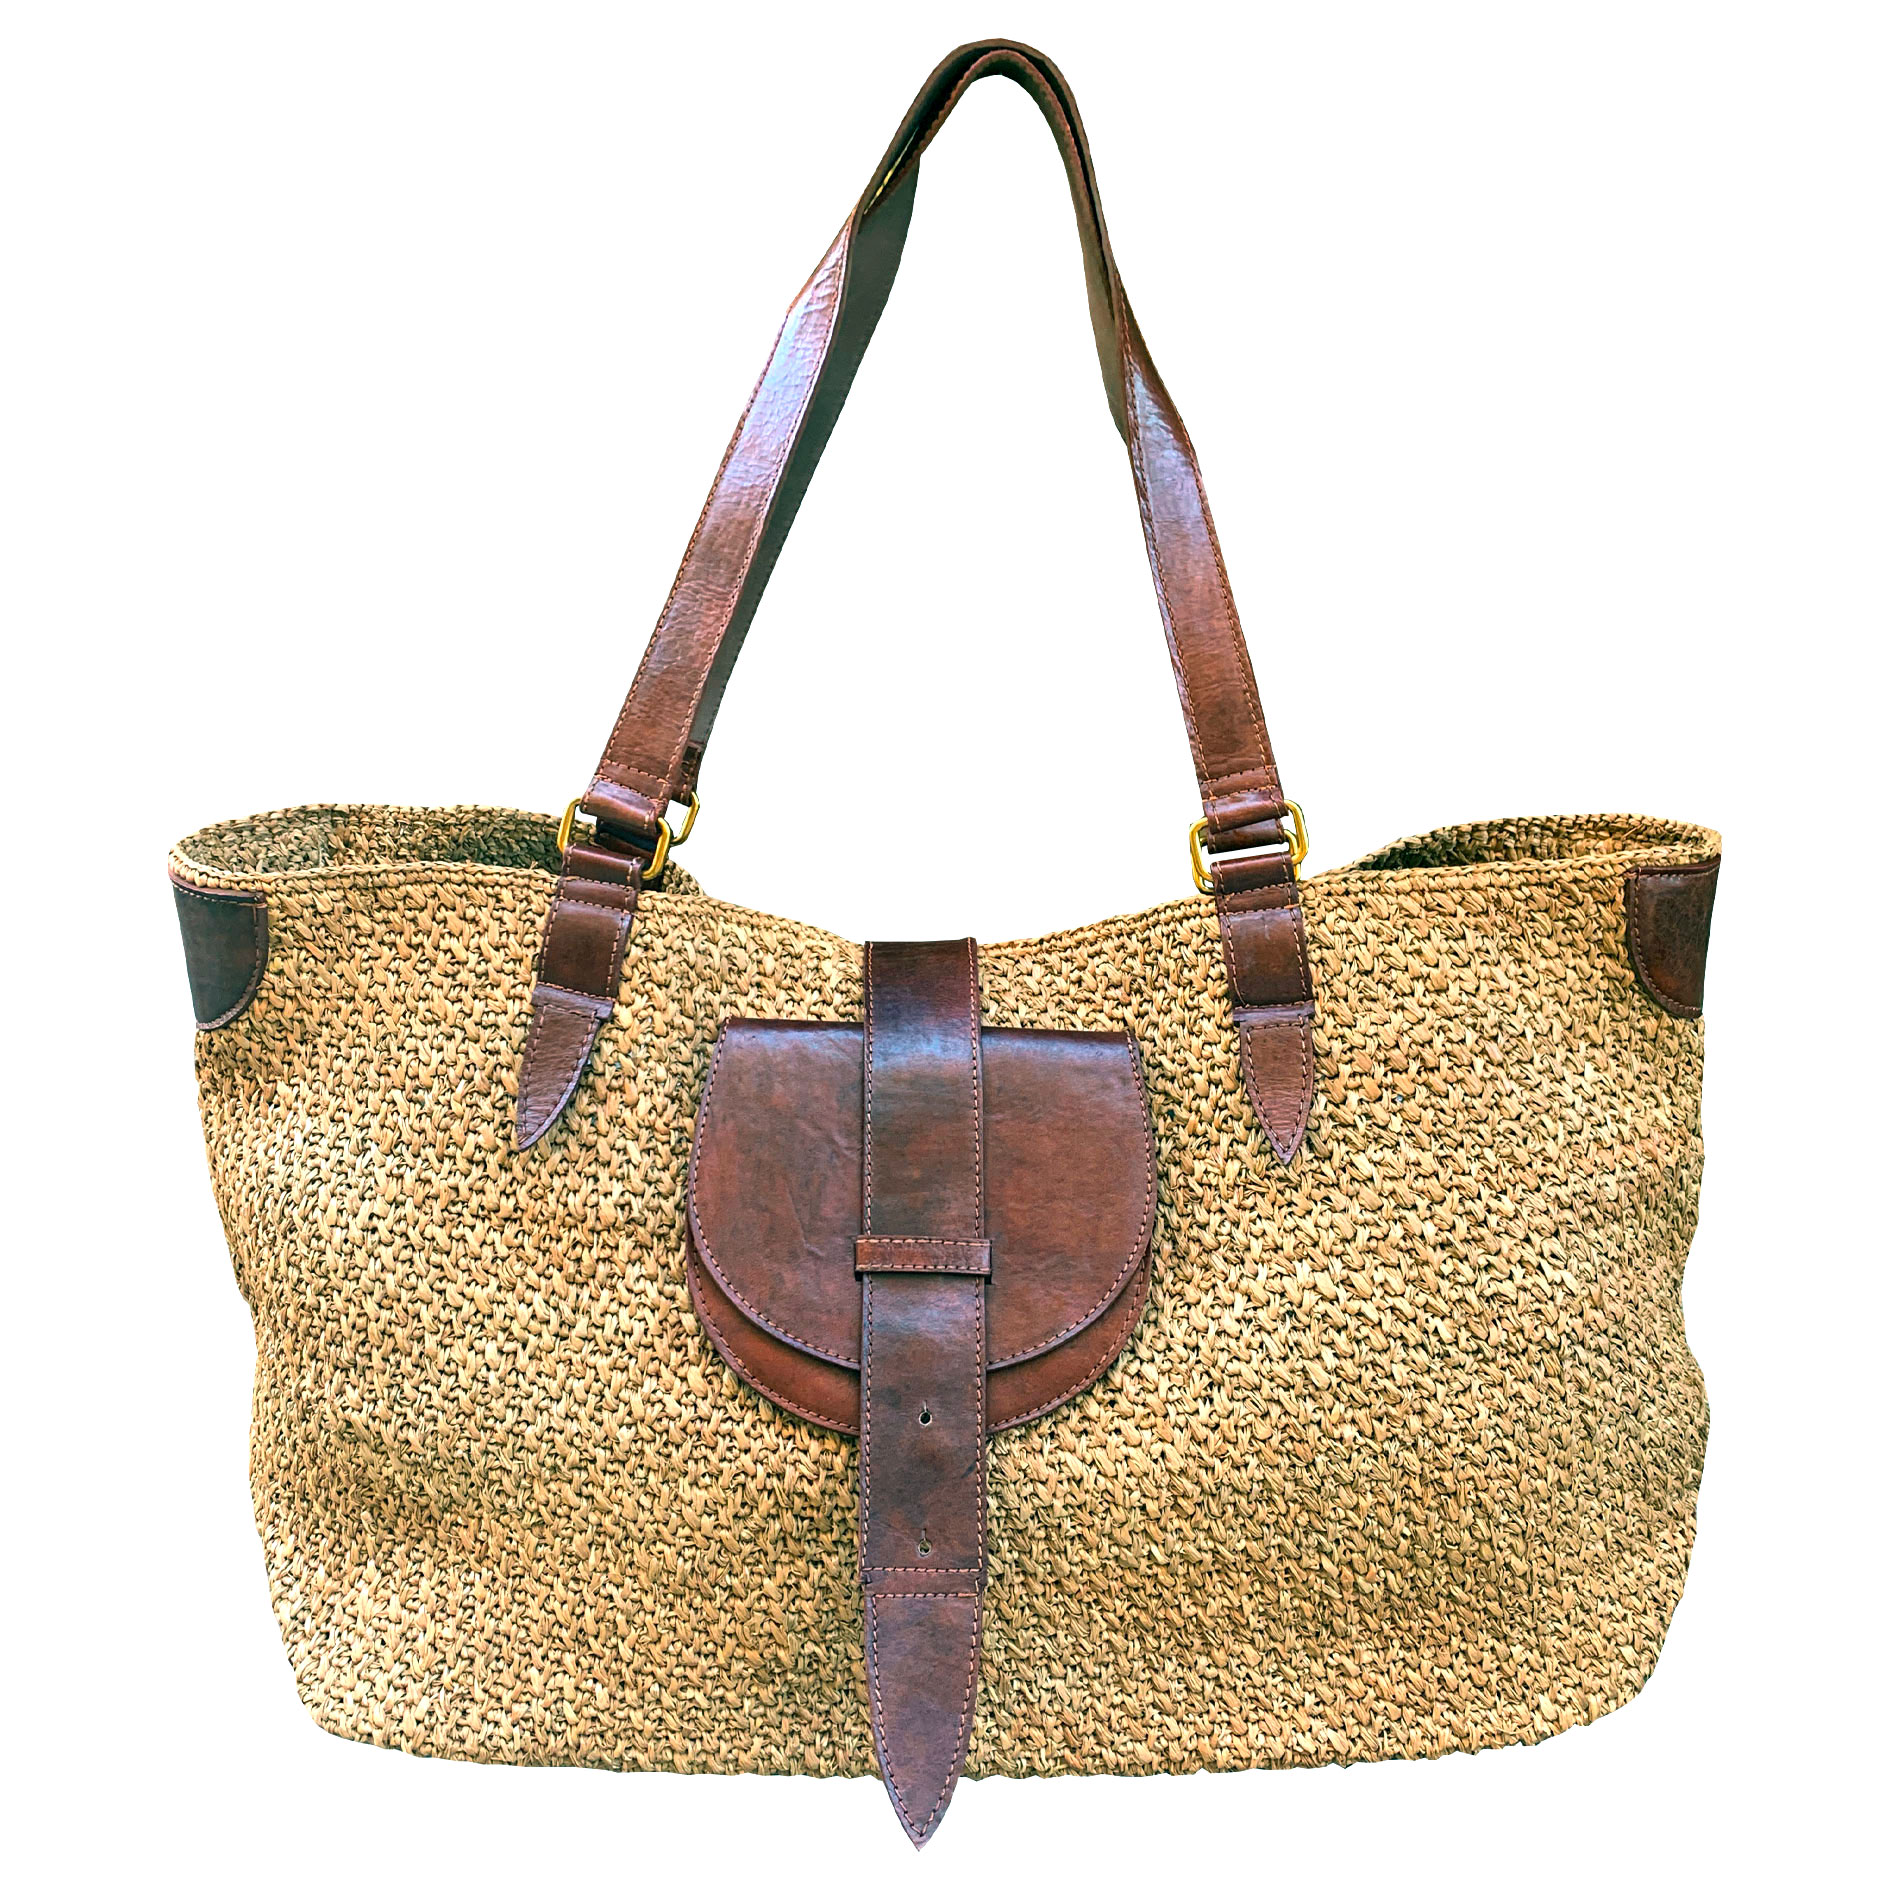 Sac cabas raphia naturel cuir marron